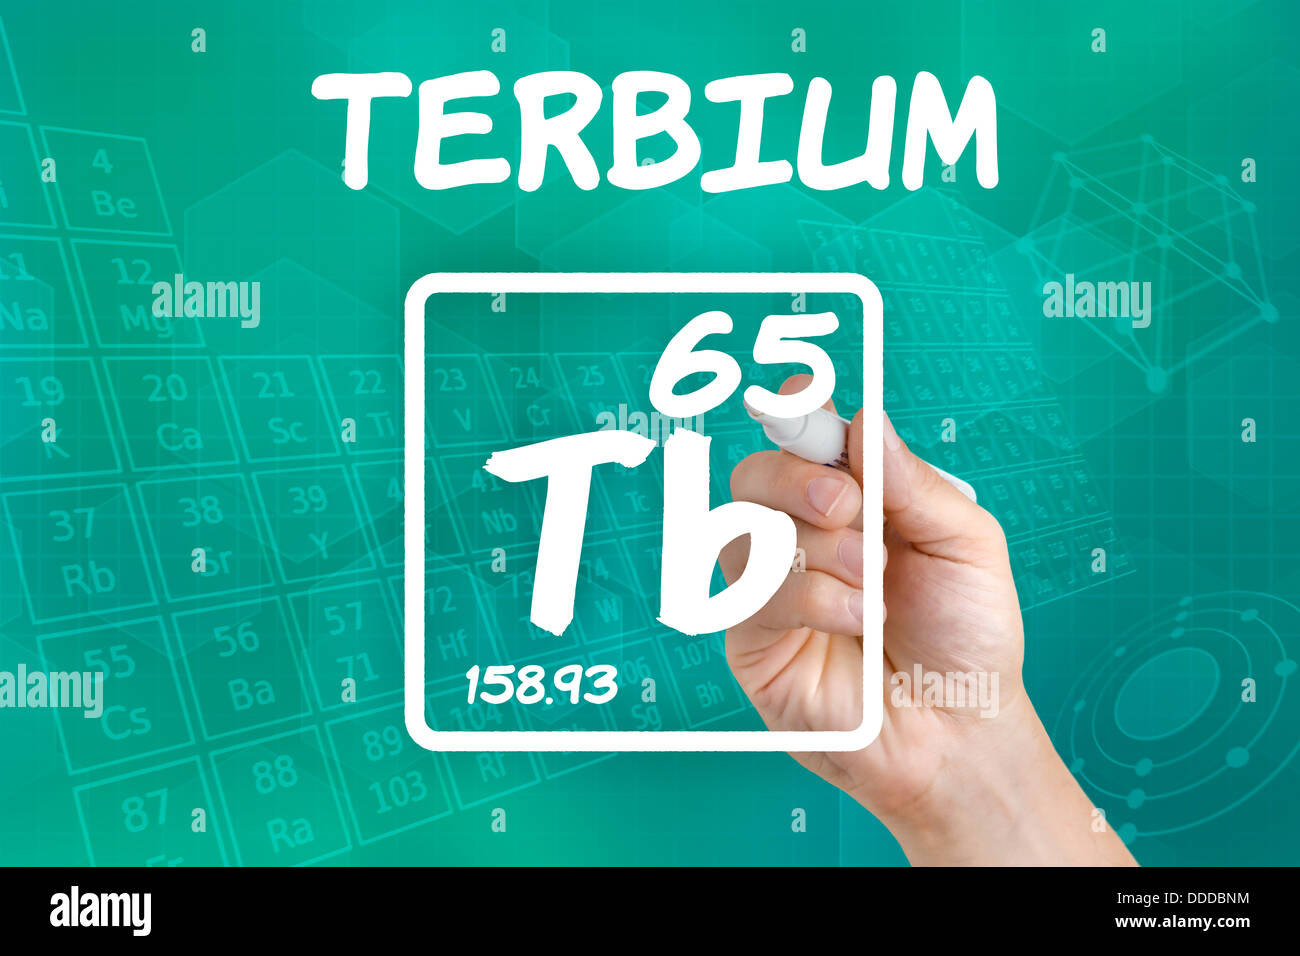 Symbol for the chemical element terbium stock photo 59916240 alamy symbol for the chemical element terbium buycottarizona Image collections